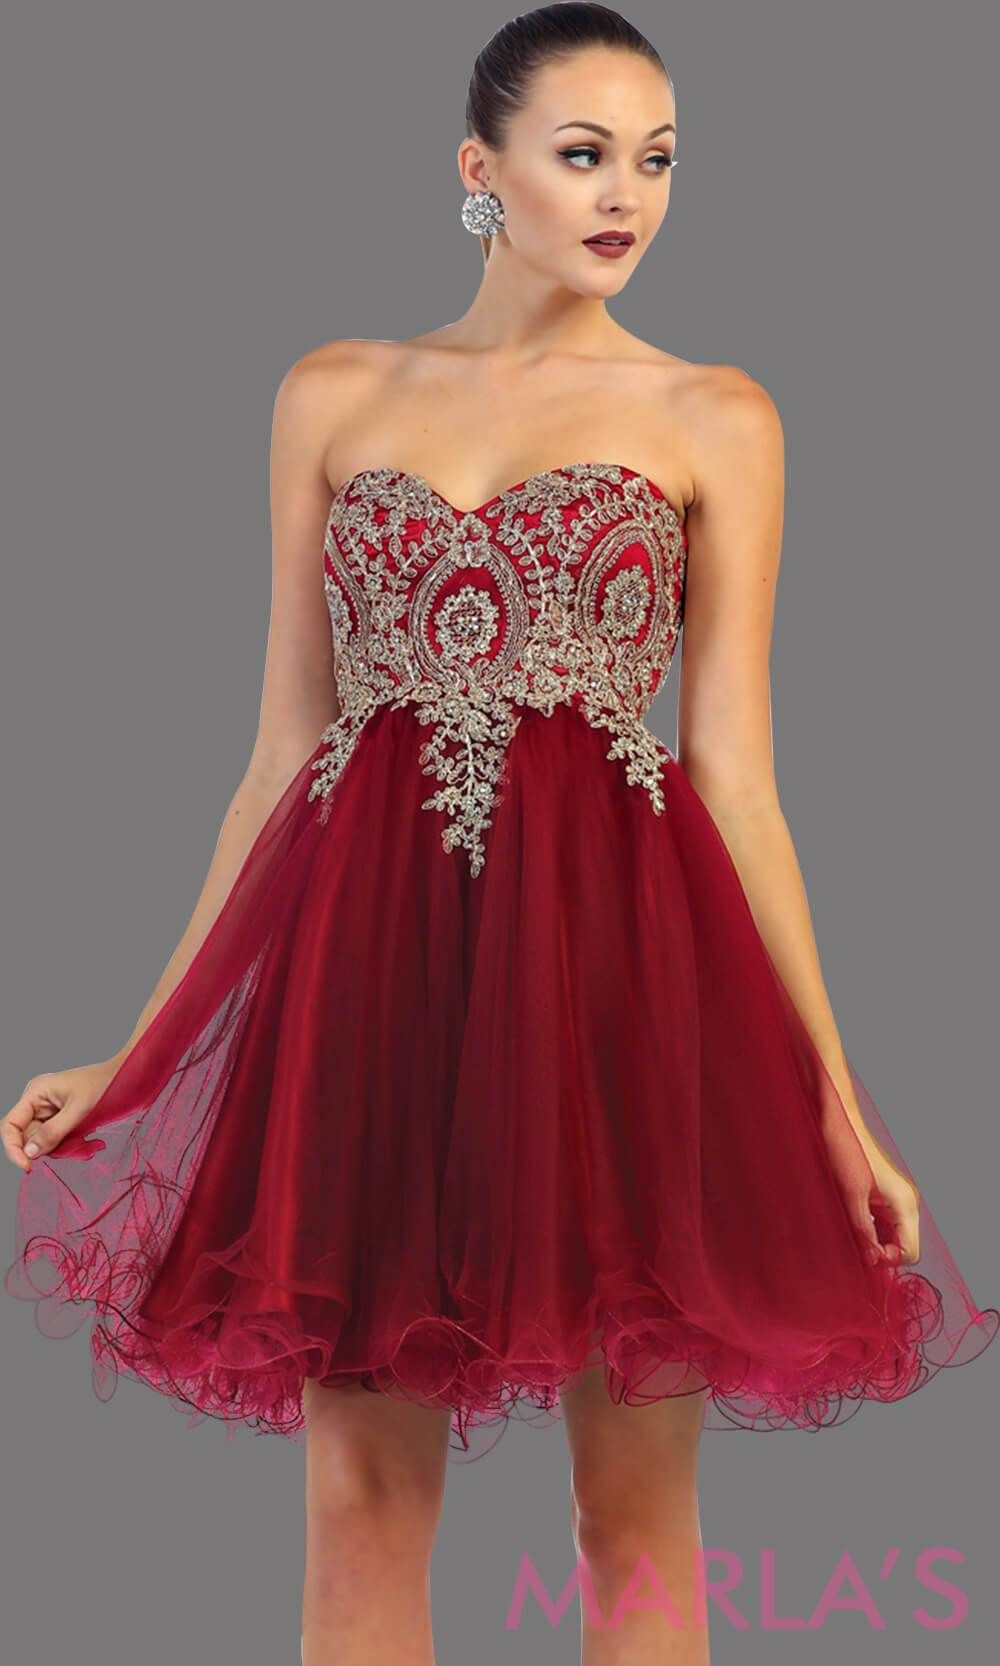 c8808730e5f Short strapless puffy burgundy dress with a corset back. This is a perfect grade  8 grad dress